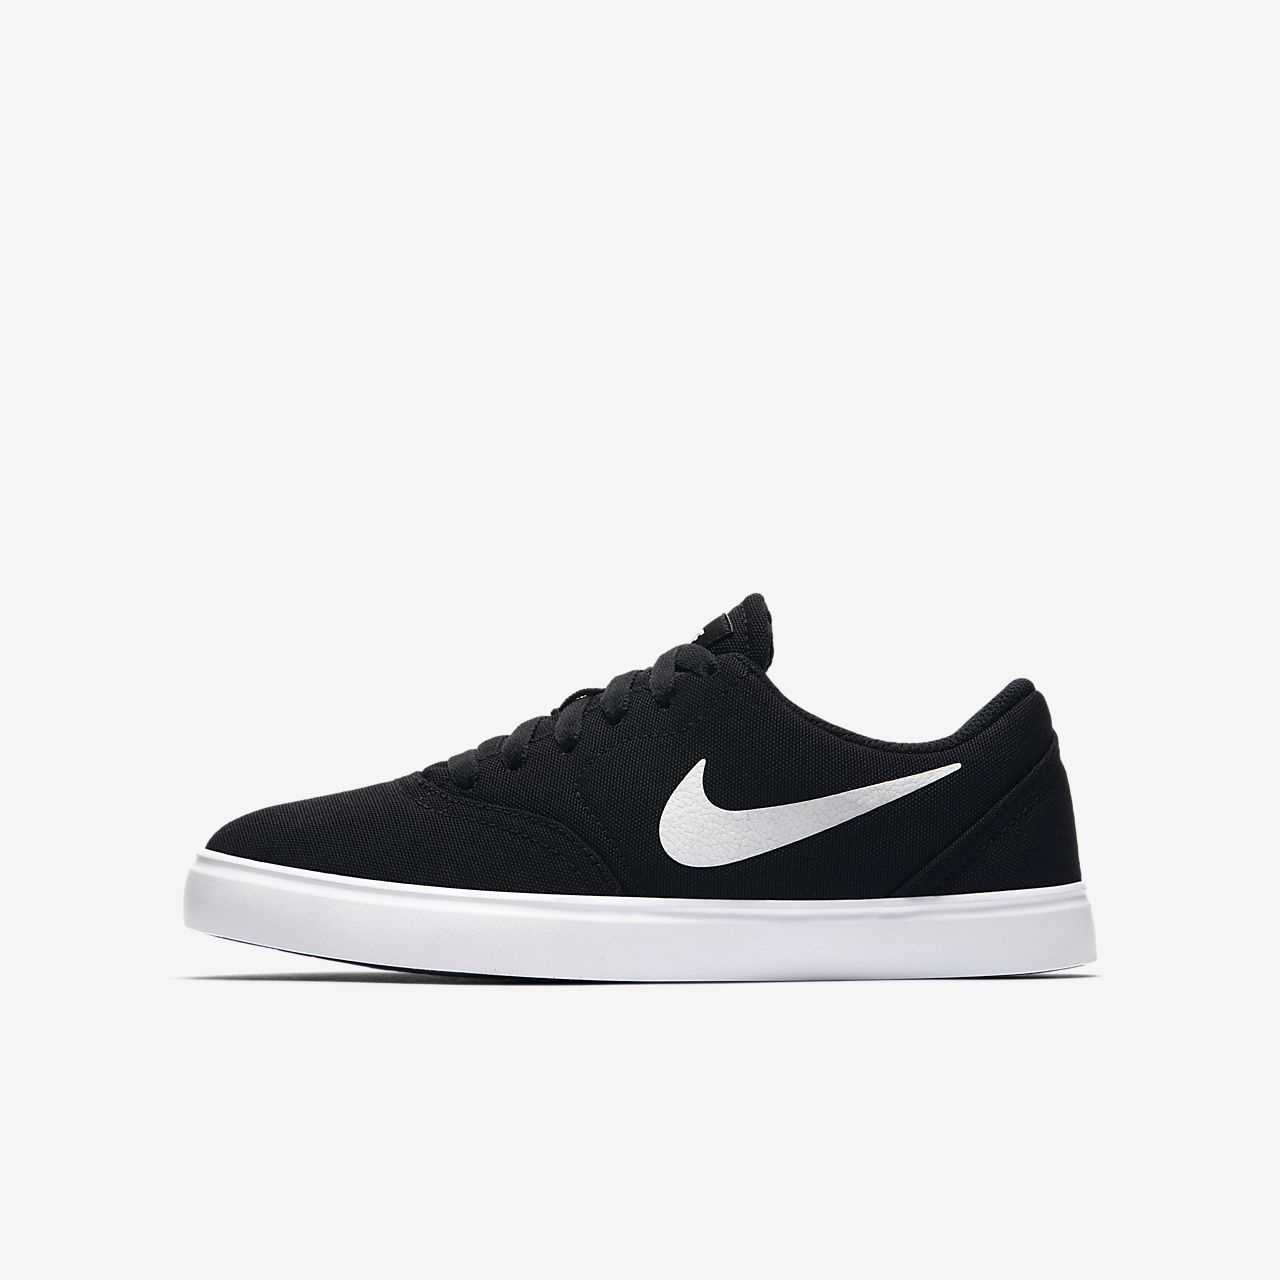 Nike SB Check Canvas Boys Skateboarding Shoes Black/White lD4338J